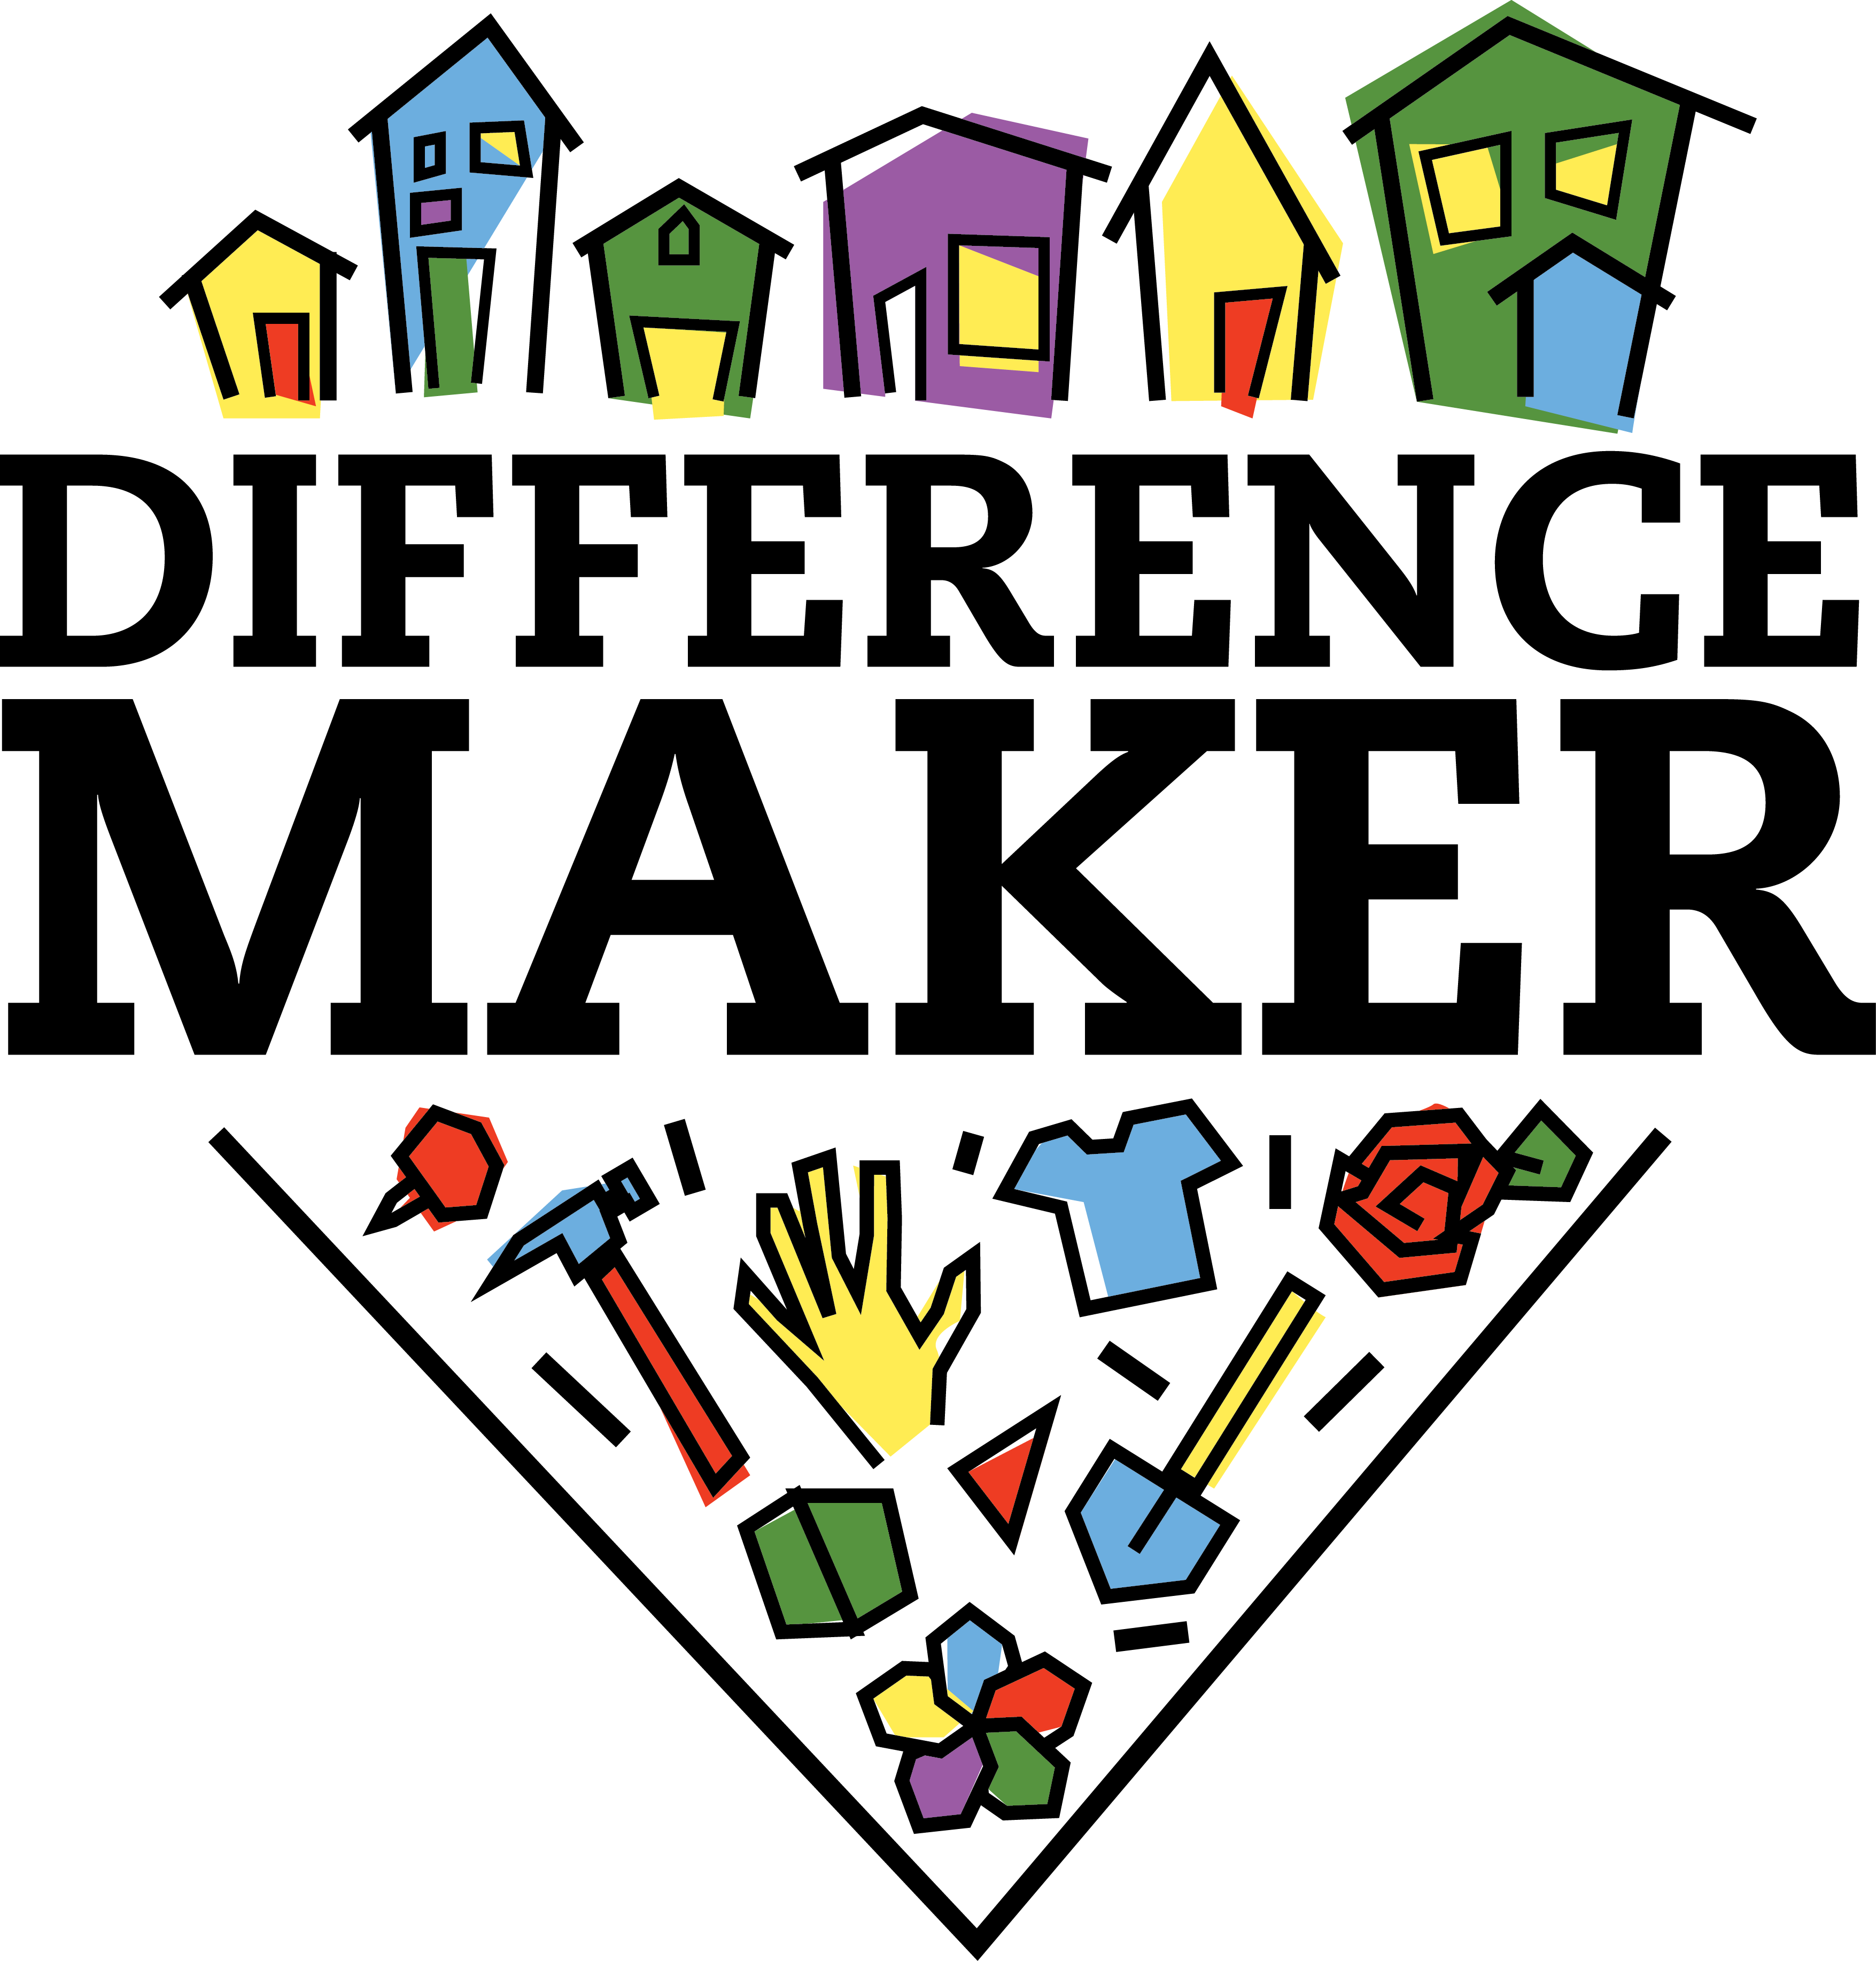 Difference maker fund project. Voting clipart survey